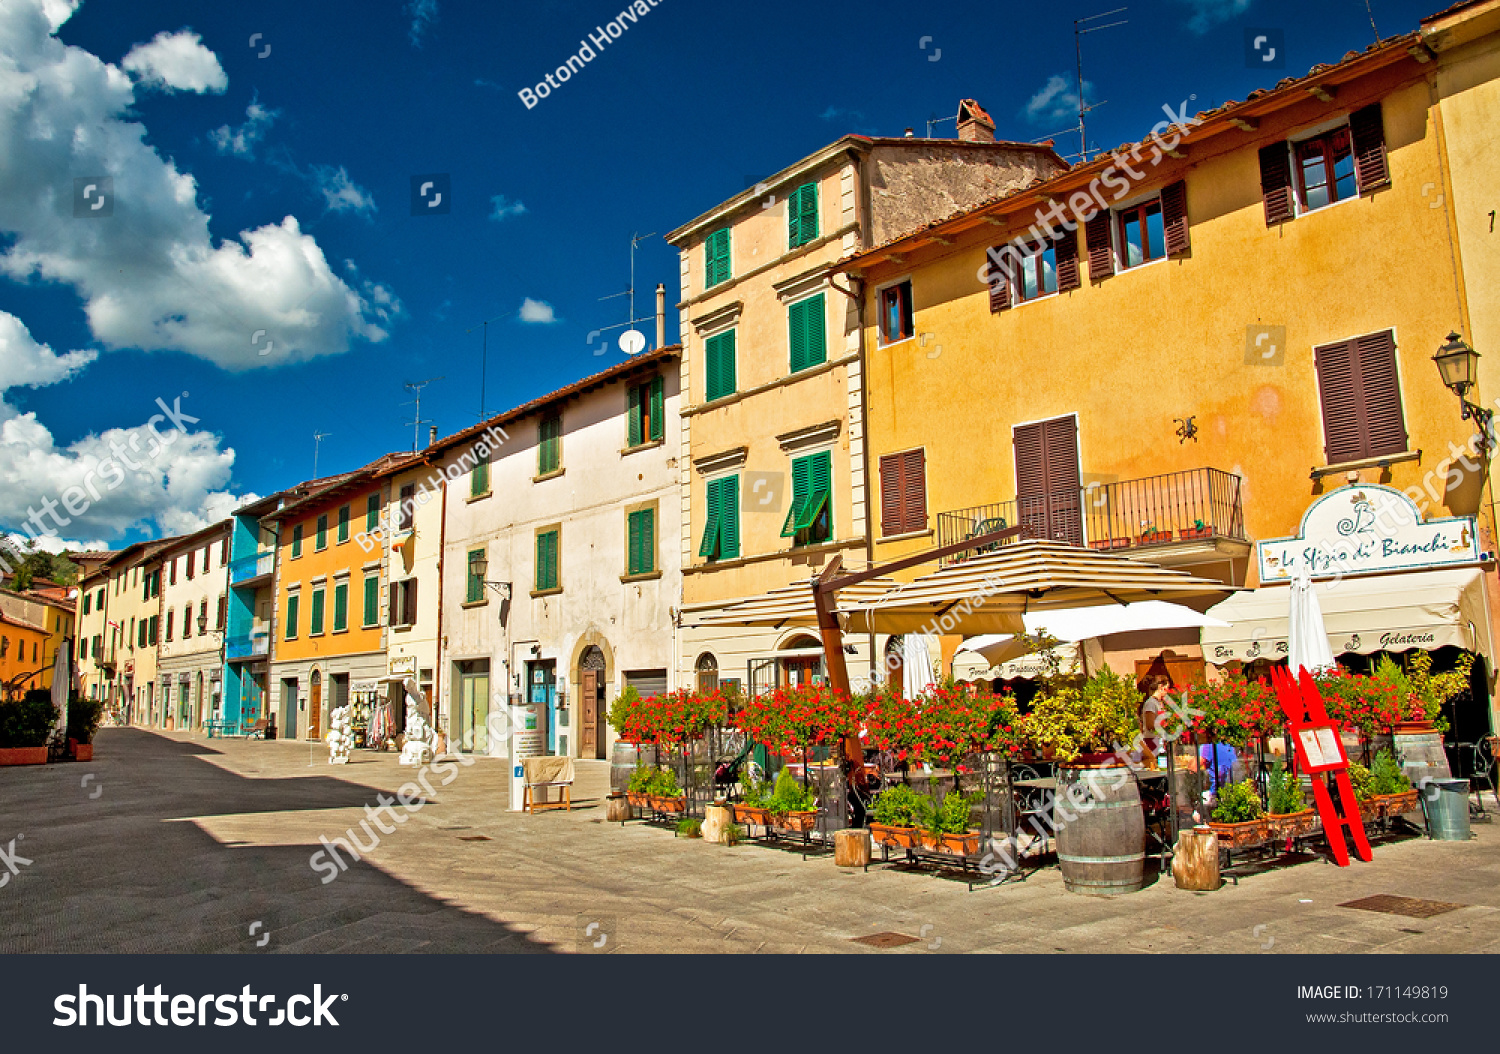 Gaiole In Chianti Italy  City pictures : GAIOLE IN CHIANTI, ITALY 12 SEPTEMBER, 2013: Nice houses in the old ...